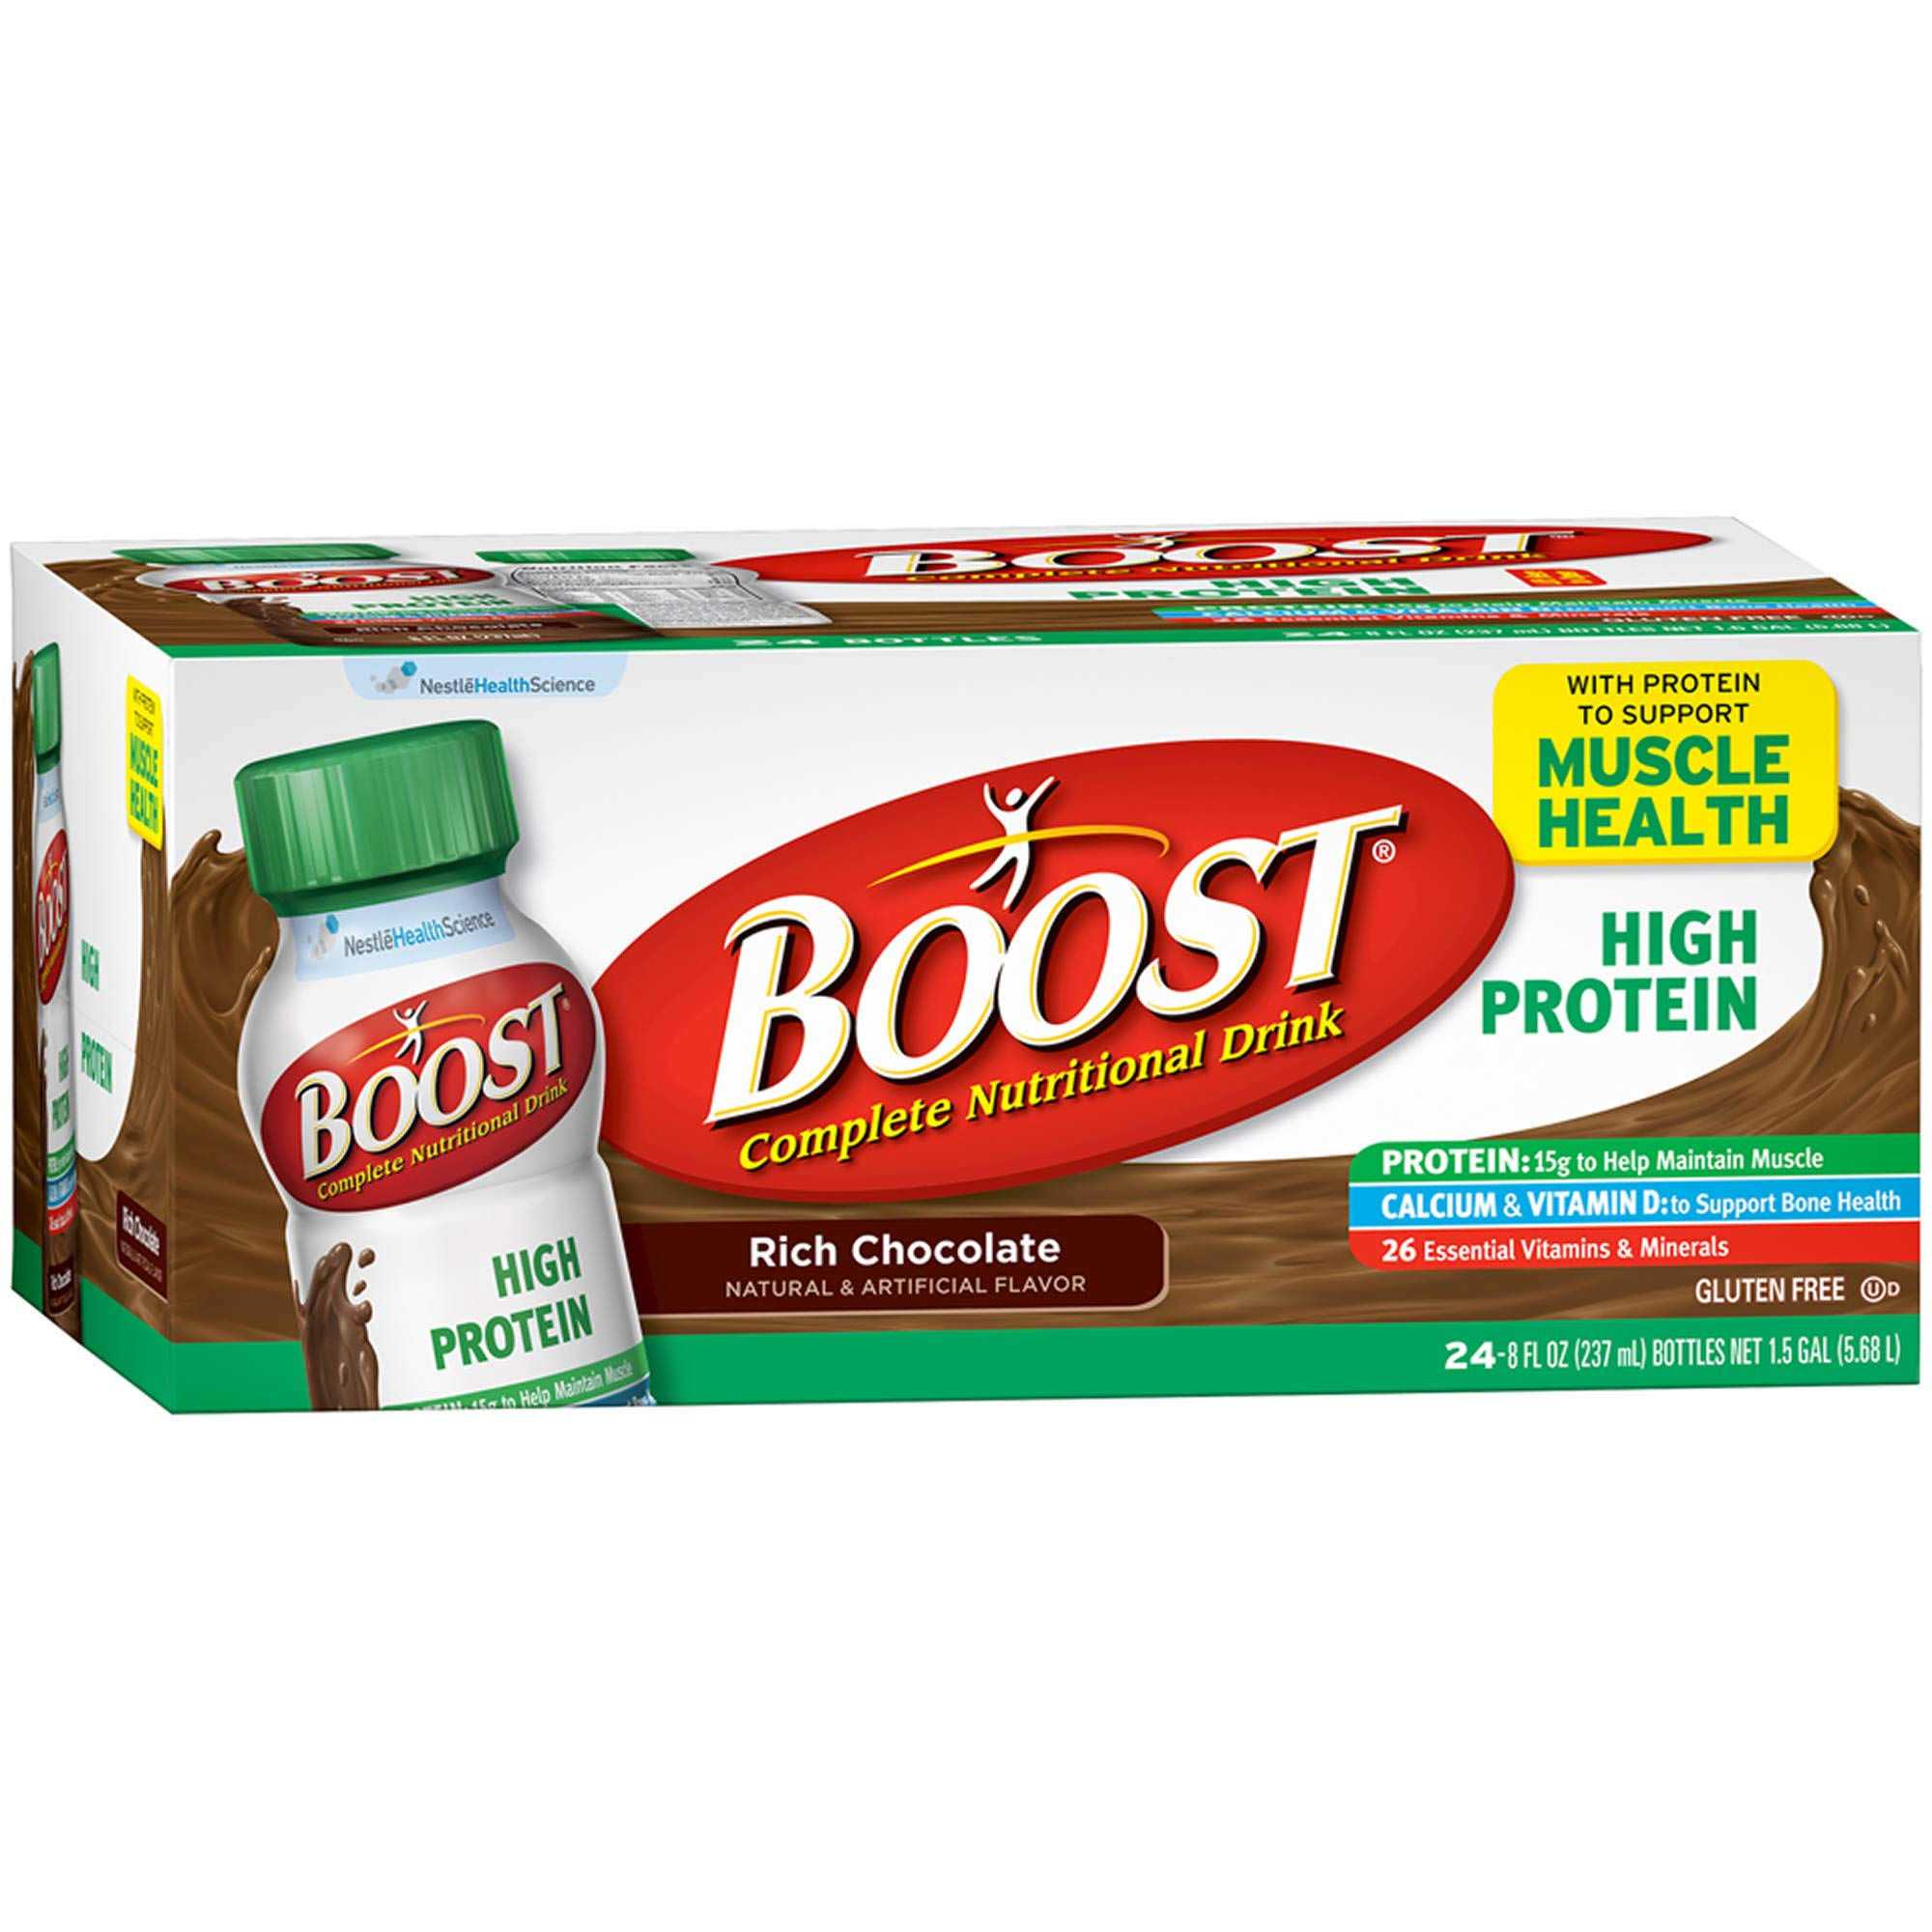 Boost High-Protein Drink, Chocolate, 24 pk./8 oz. by evaxo (Image #1)